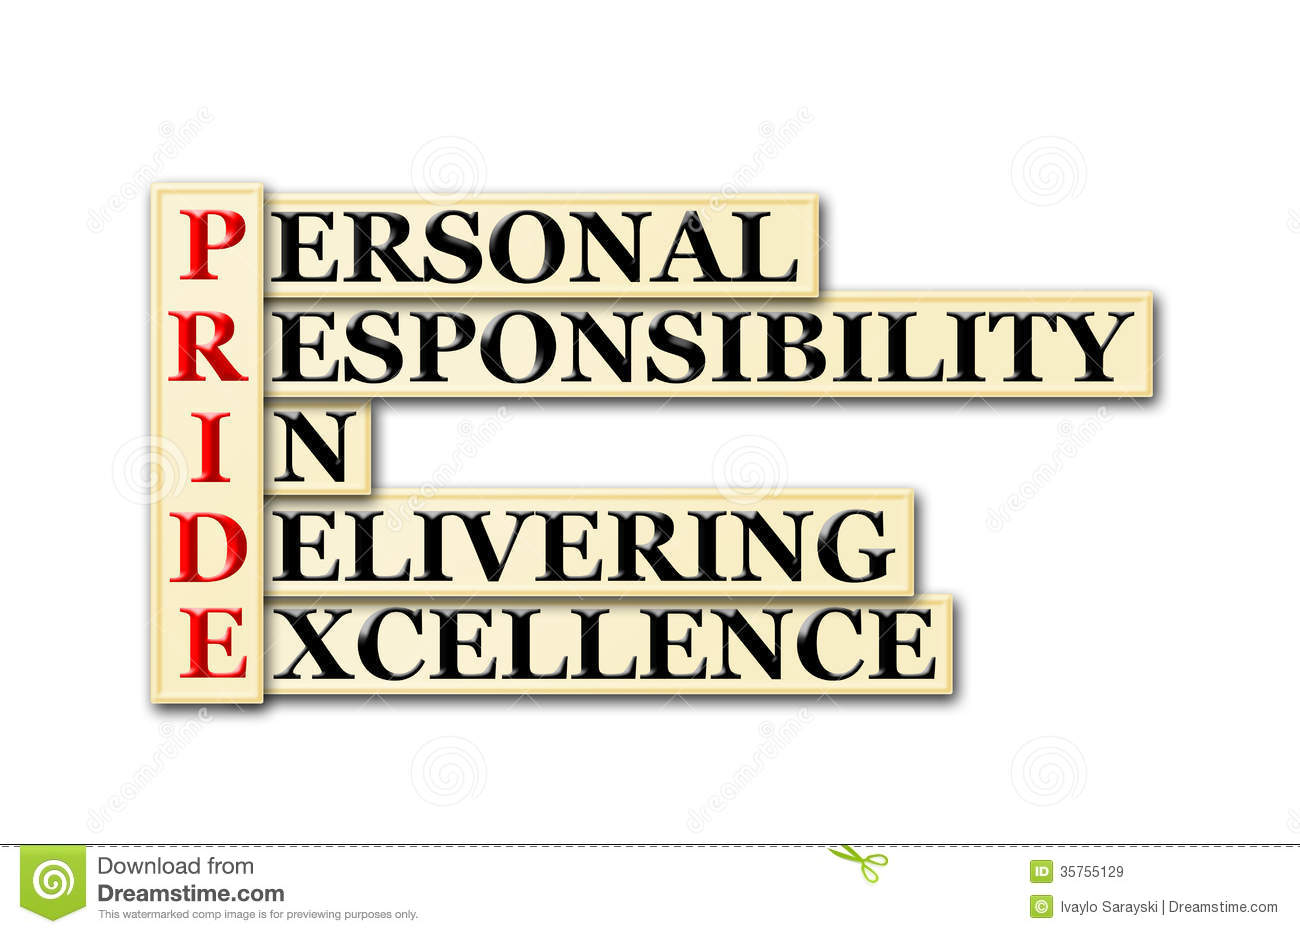 pride responsibility excellence personal acronym quotes clipart delivering clip workplace conceptual royalty clipartpanda quotesgram humility sayings illustration terms